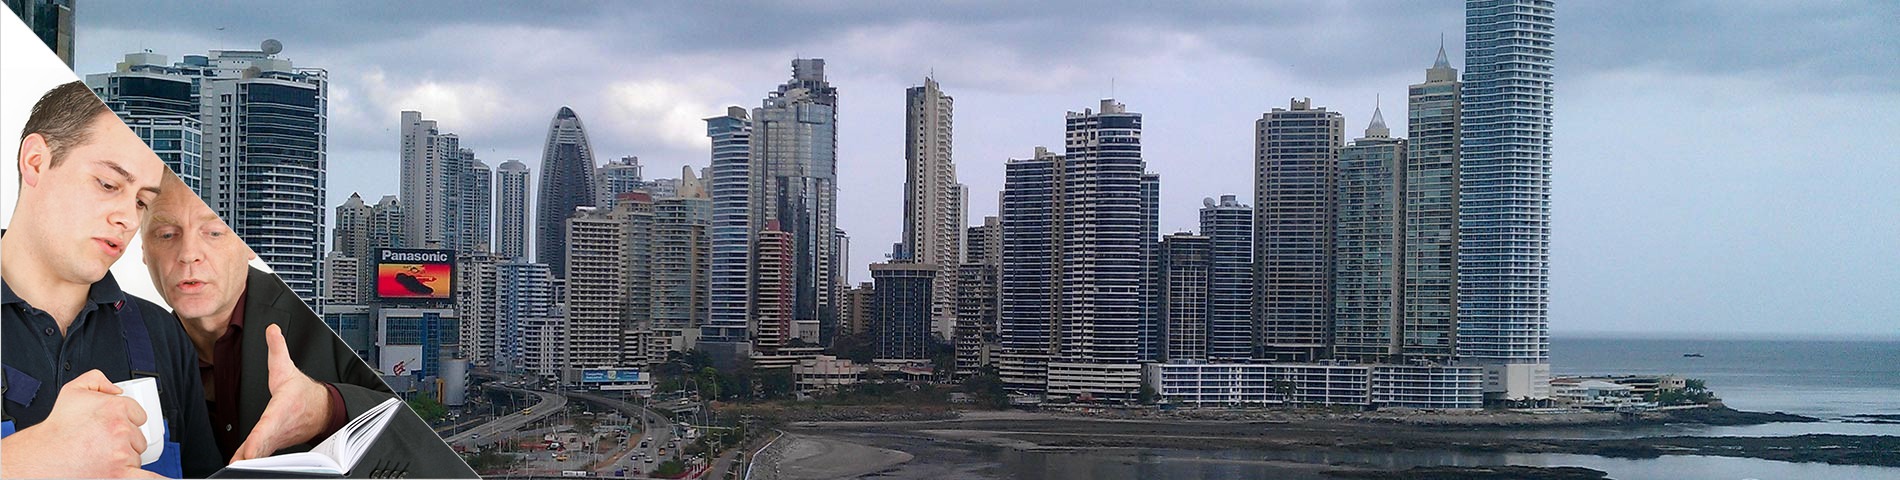 Panama City - One-to-One